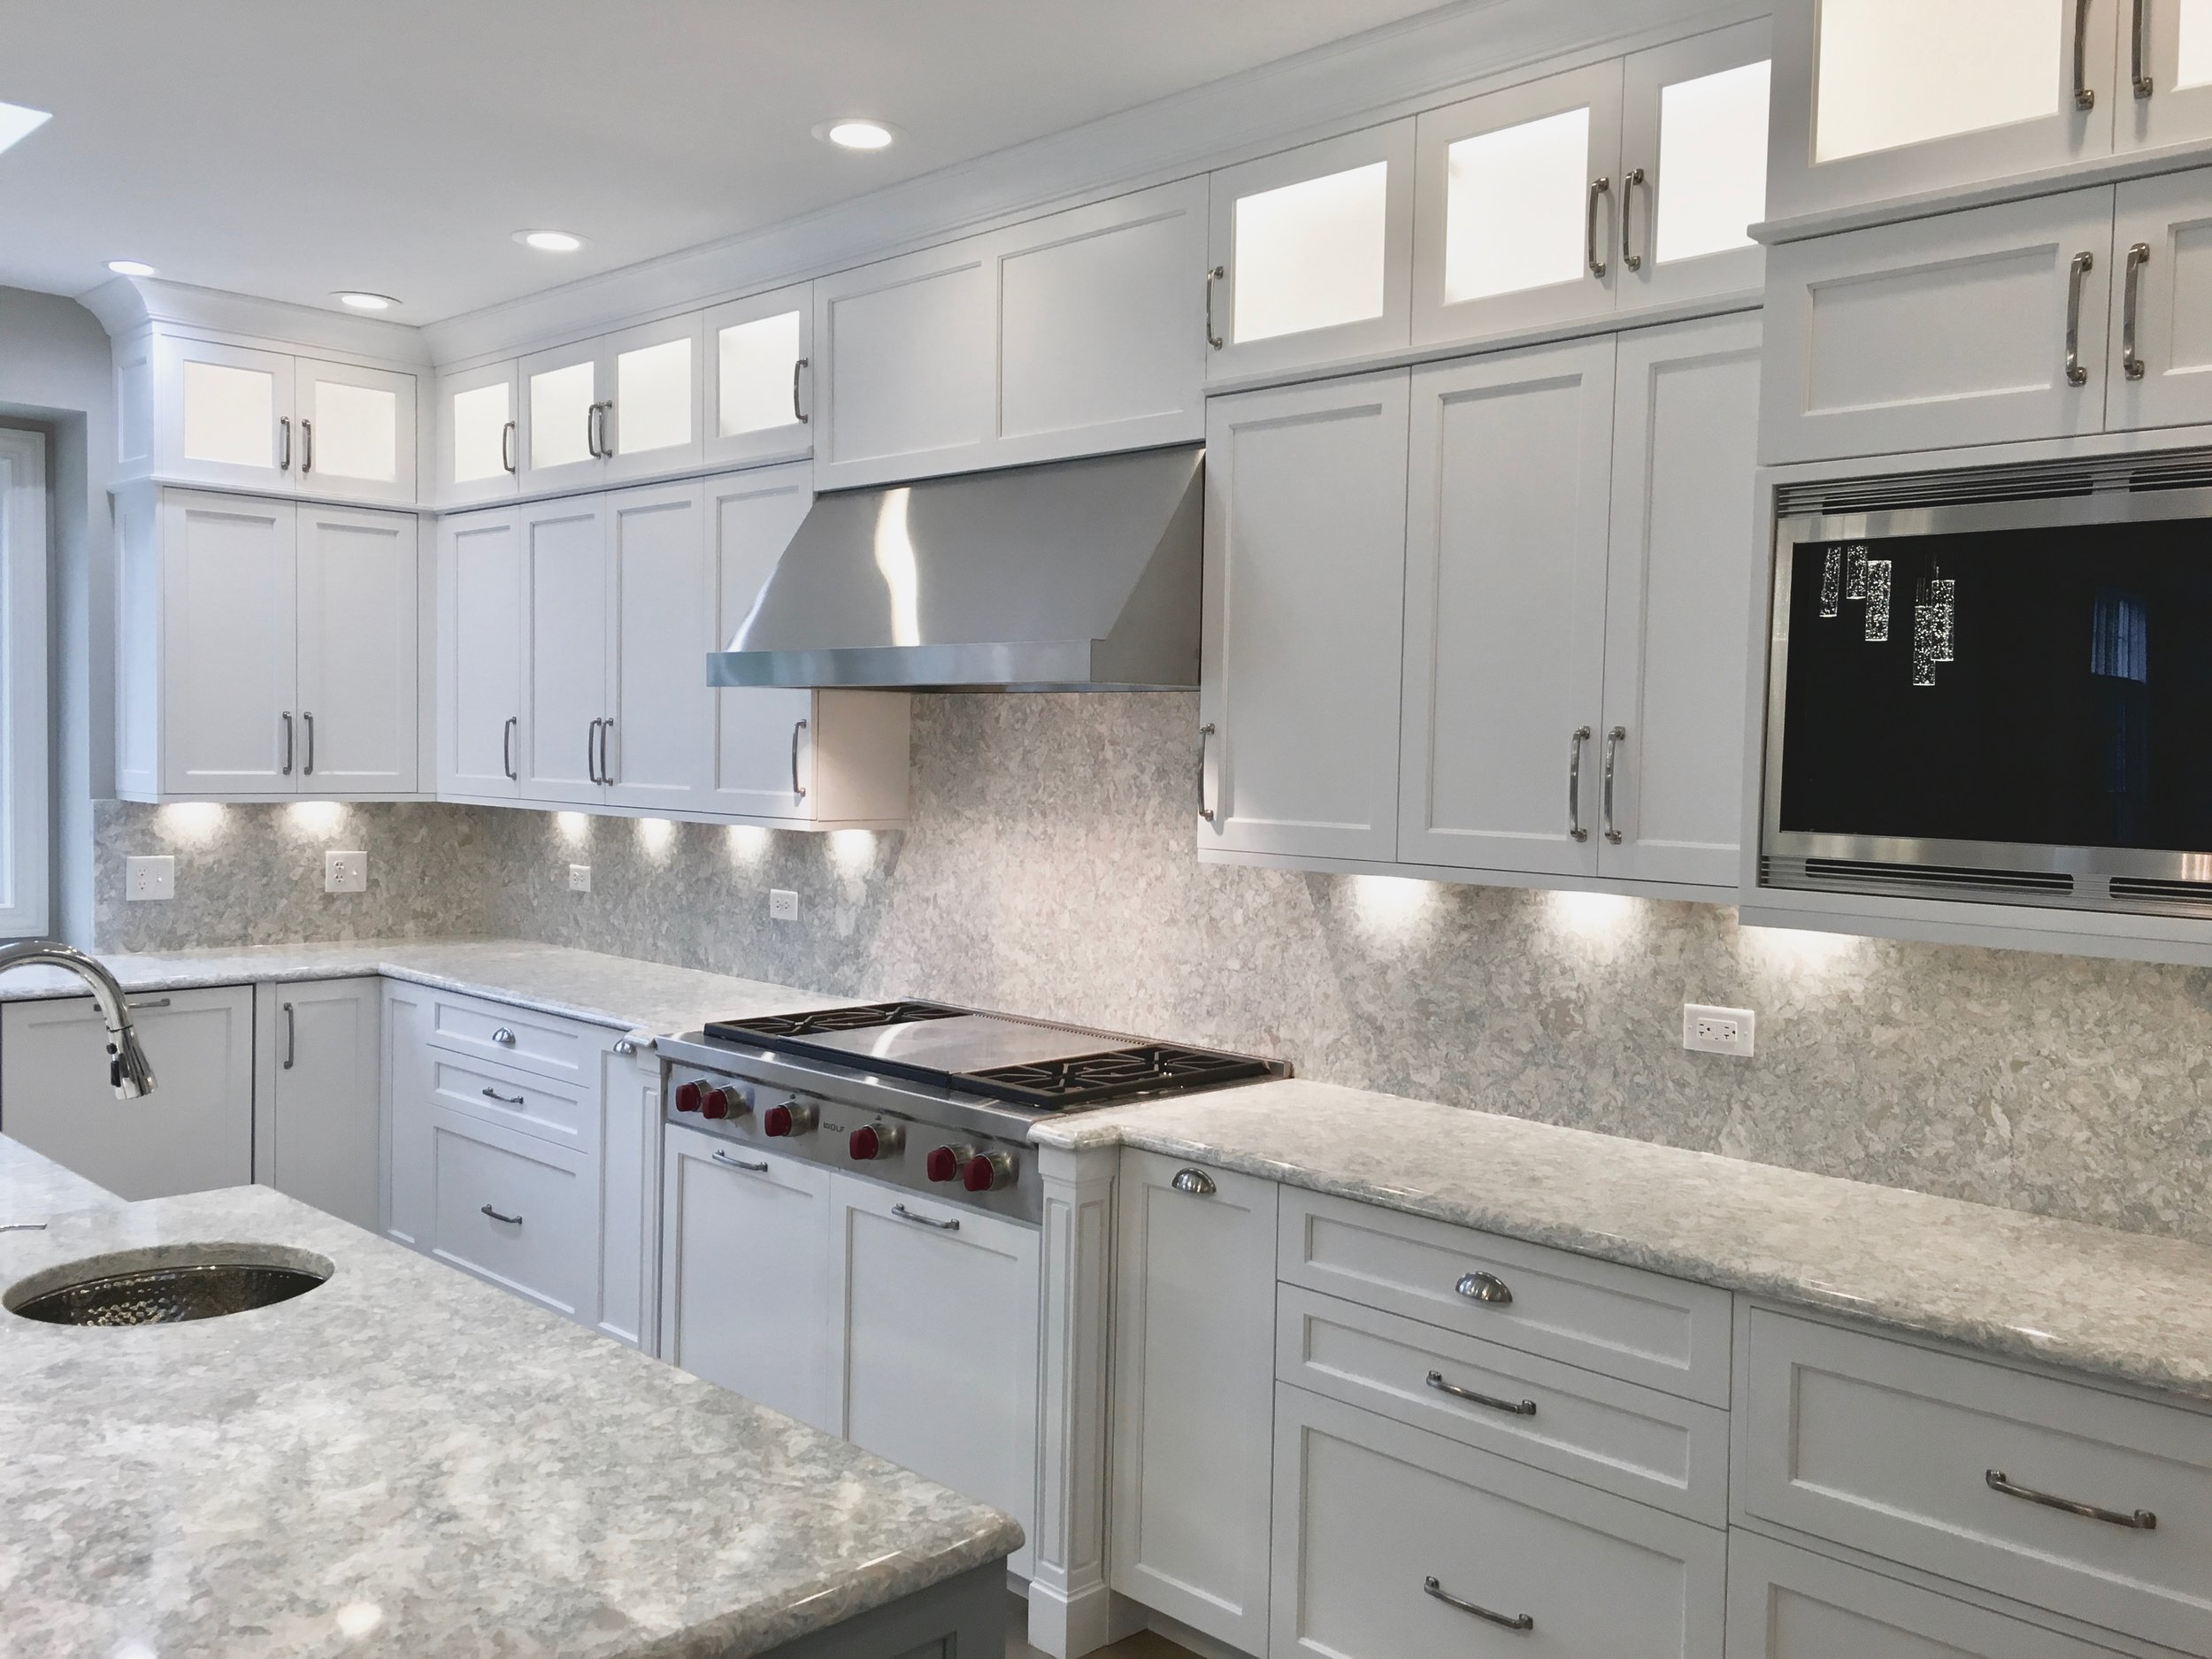 Custom Kitchen & First Floor Remodel in South Barrington IL. Completed by Southampton Builders LLC.